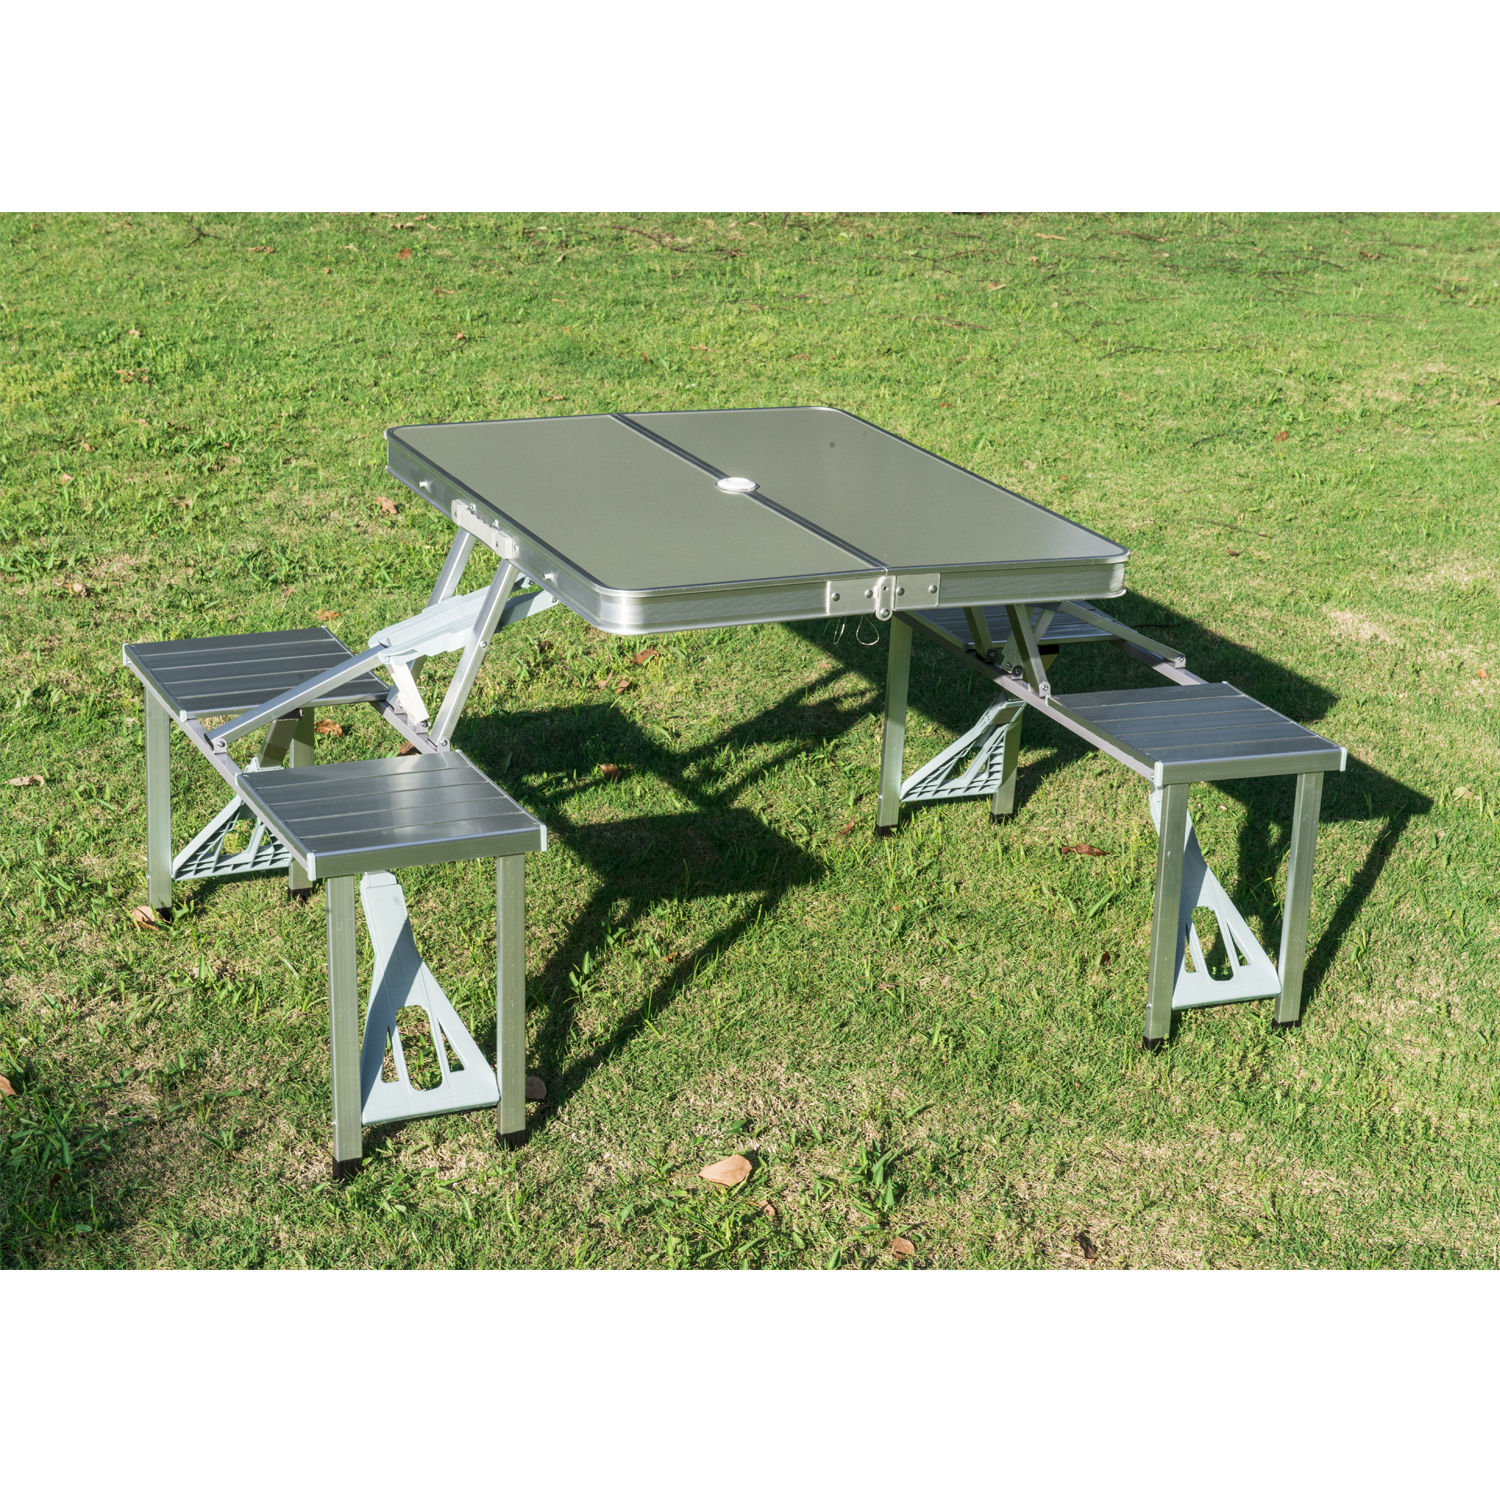 Outsunny Outdoor Aluminum Portable Folding Camp Suitcase Picnic Table with 4 Seats, Silver 1